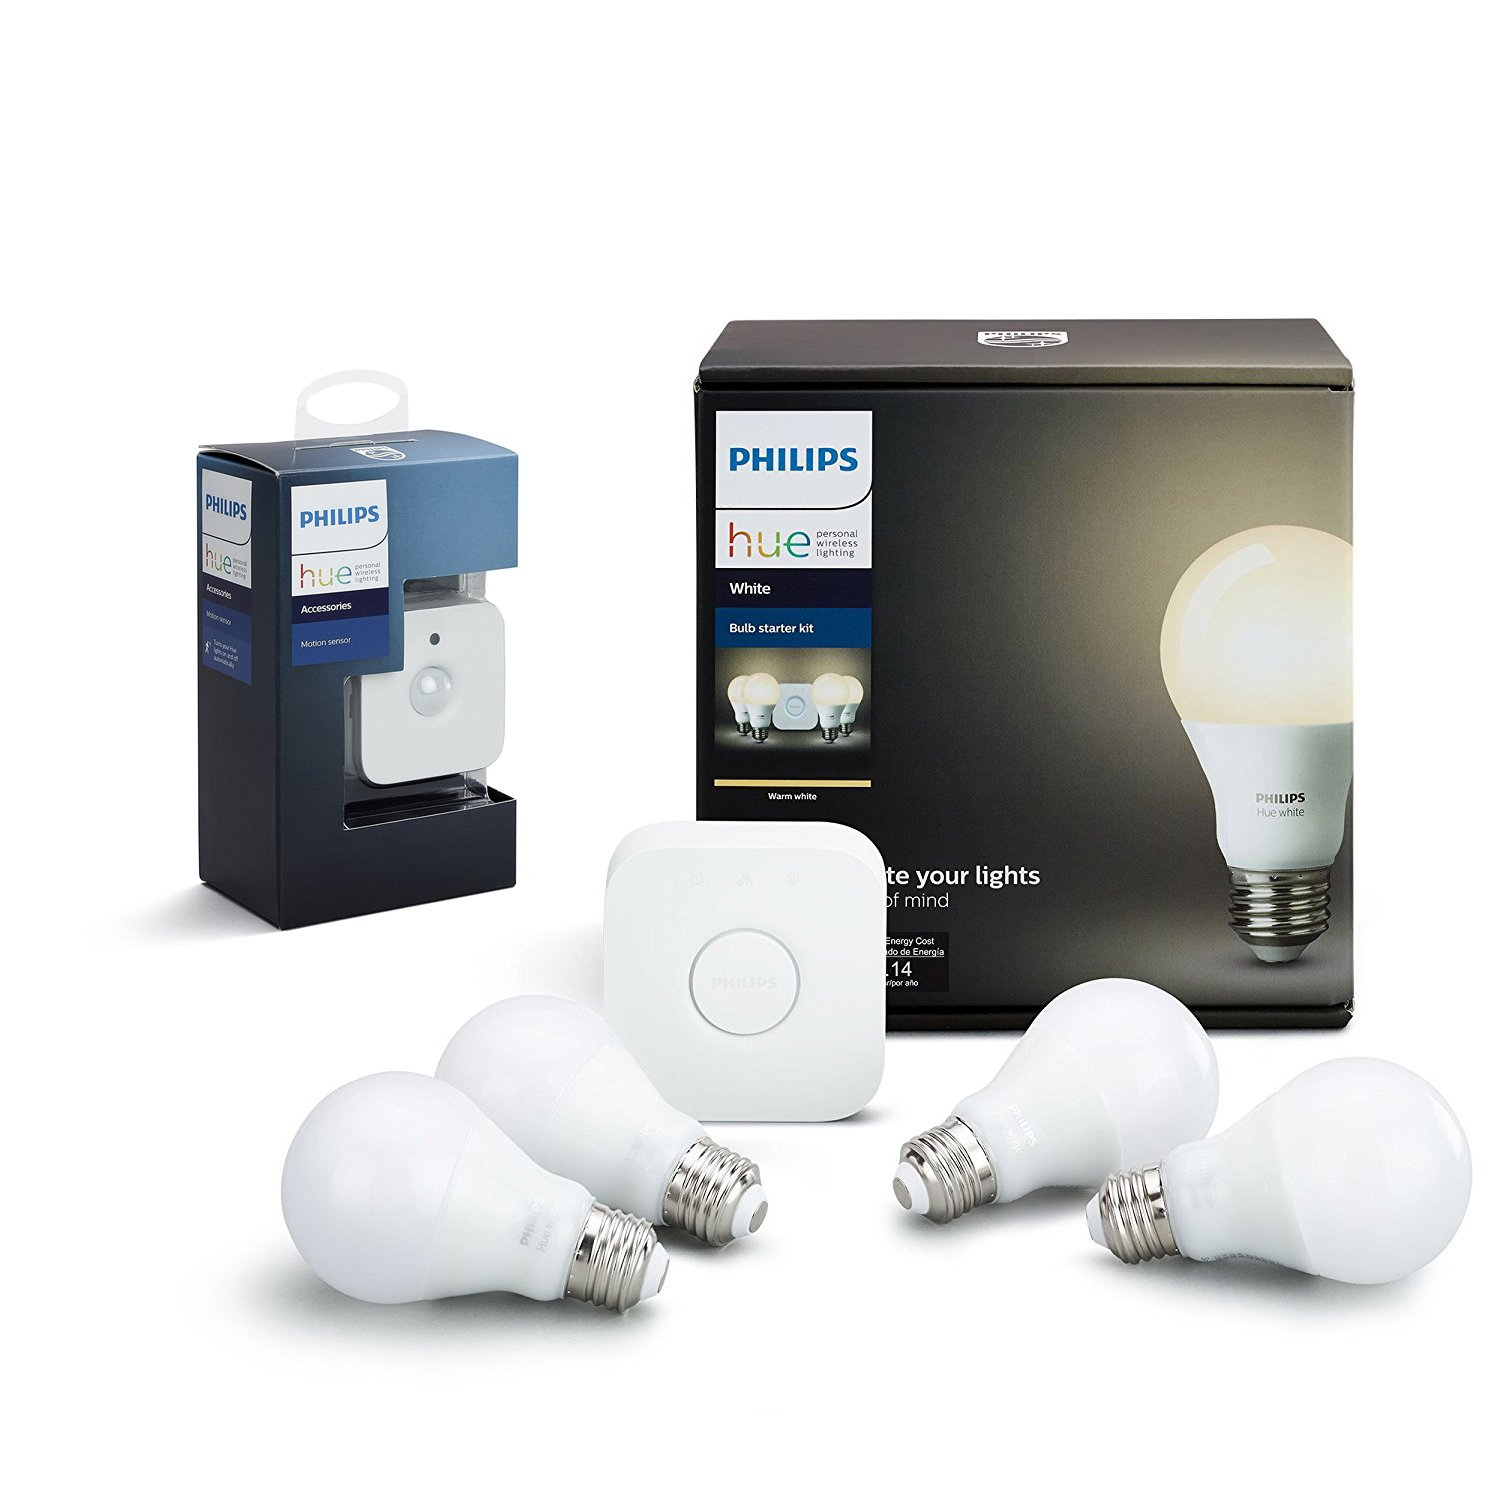 Philips Hue White LED Smart Bulb Starter Kit with Motion Sensor Bundle (Compatible with Amazon Alexa, Apple HomeKit, and Google Assistant)